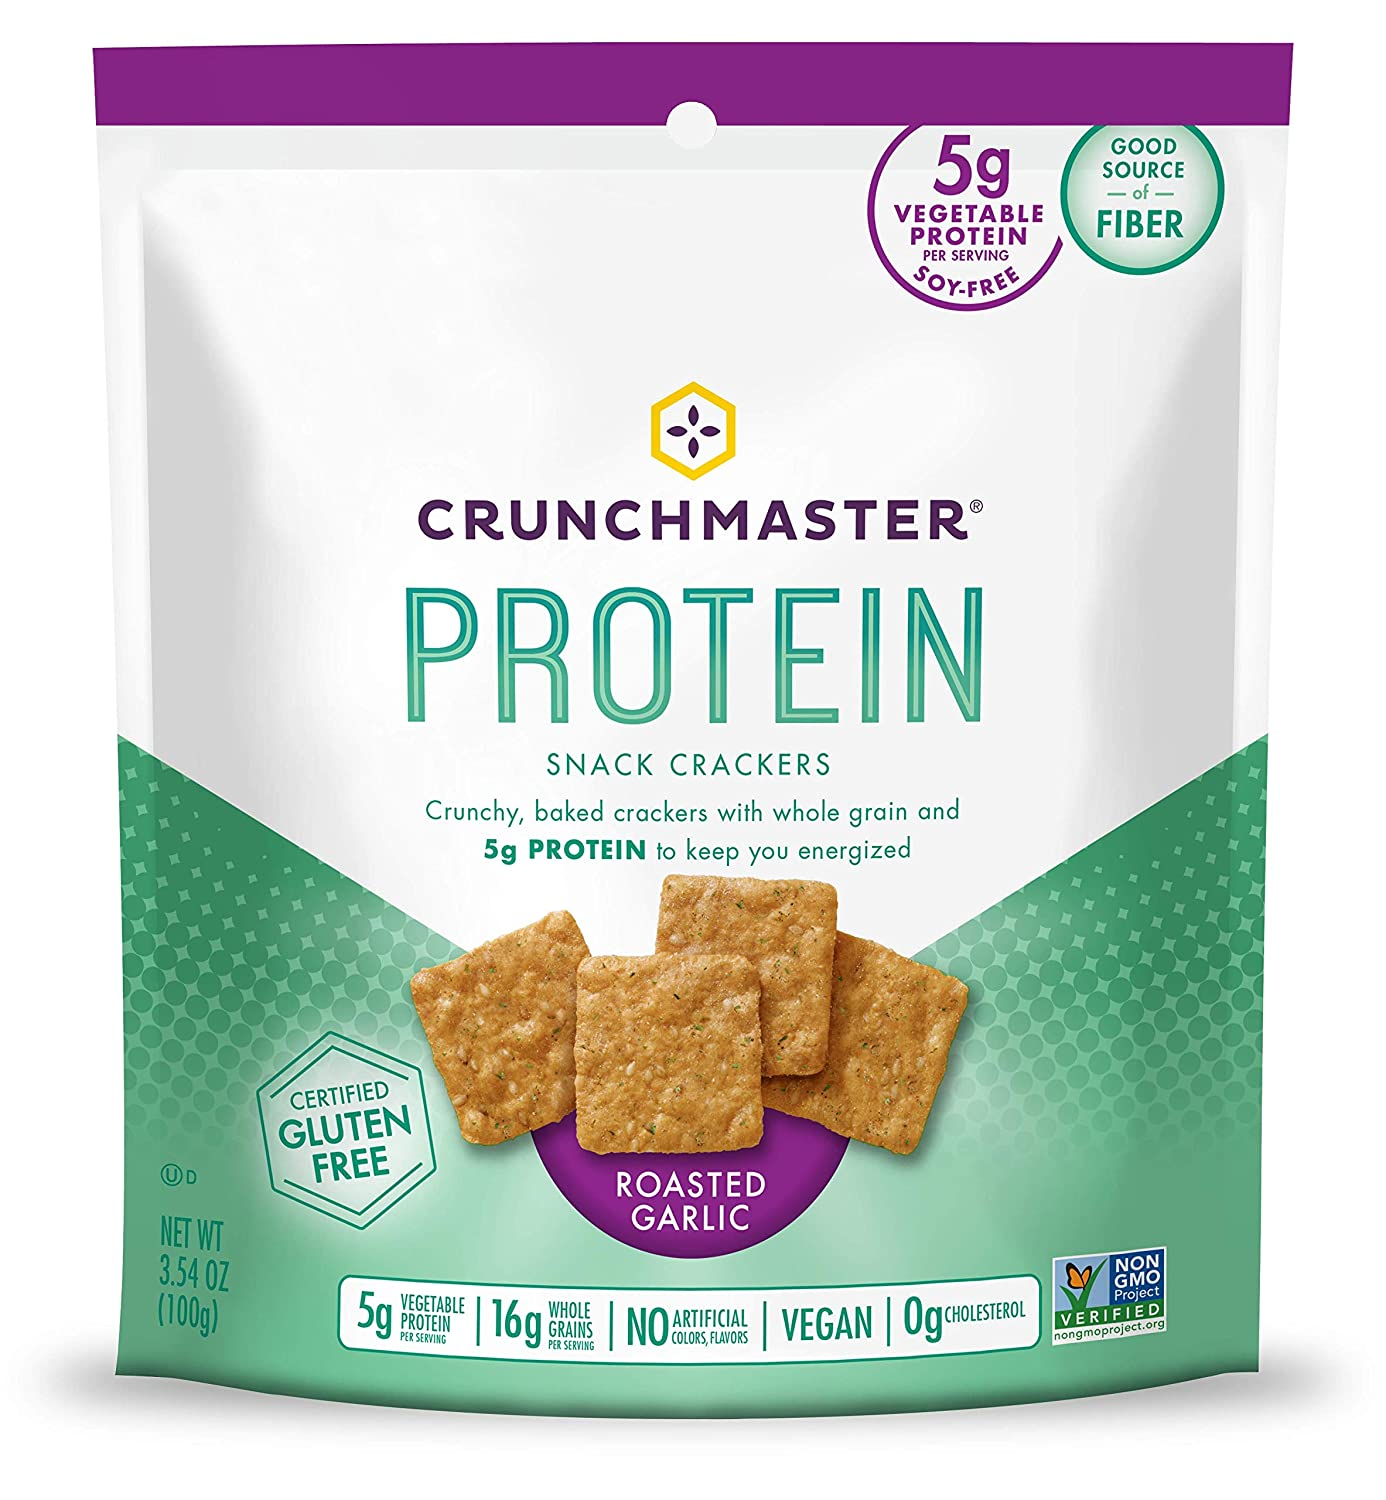 Crunchmaster Protein Snack Crackers, Roasted Garlic, 3.54 Ounce